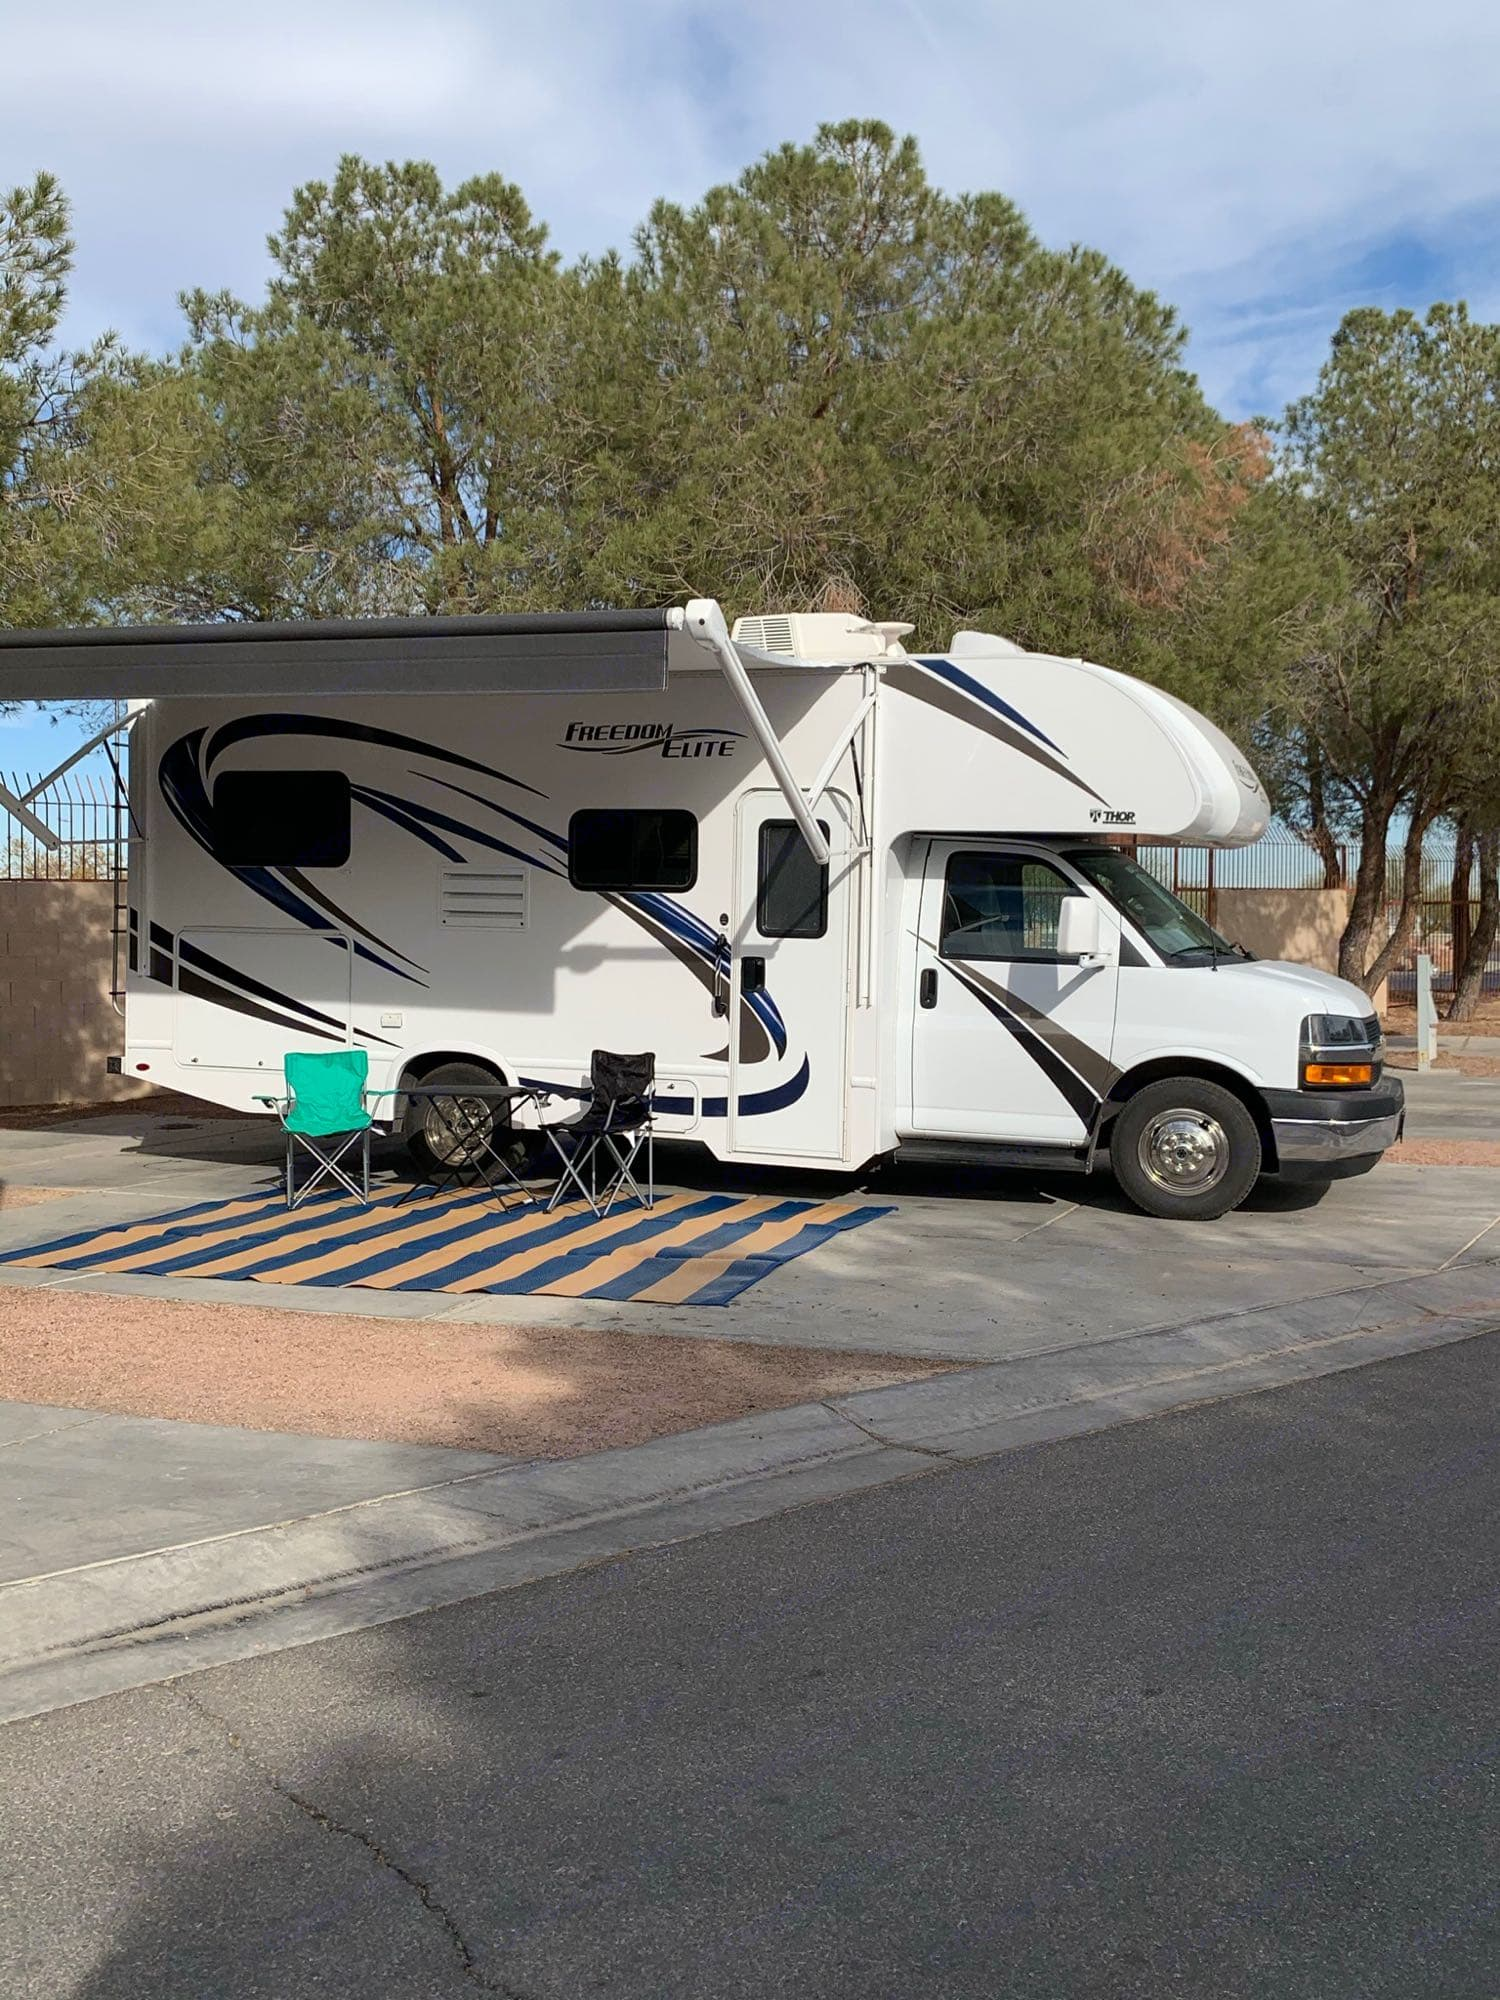 Electrical awning with LED lights. Two camping chairs, table and outdoor rug, included with your rental. . Thor Motor Coach Freedom Elite 2019